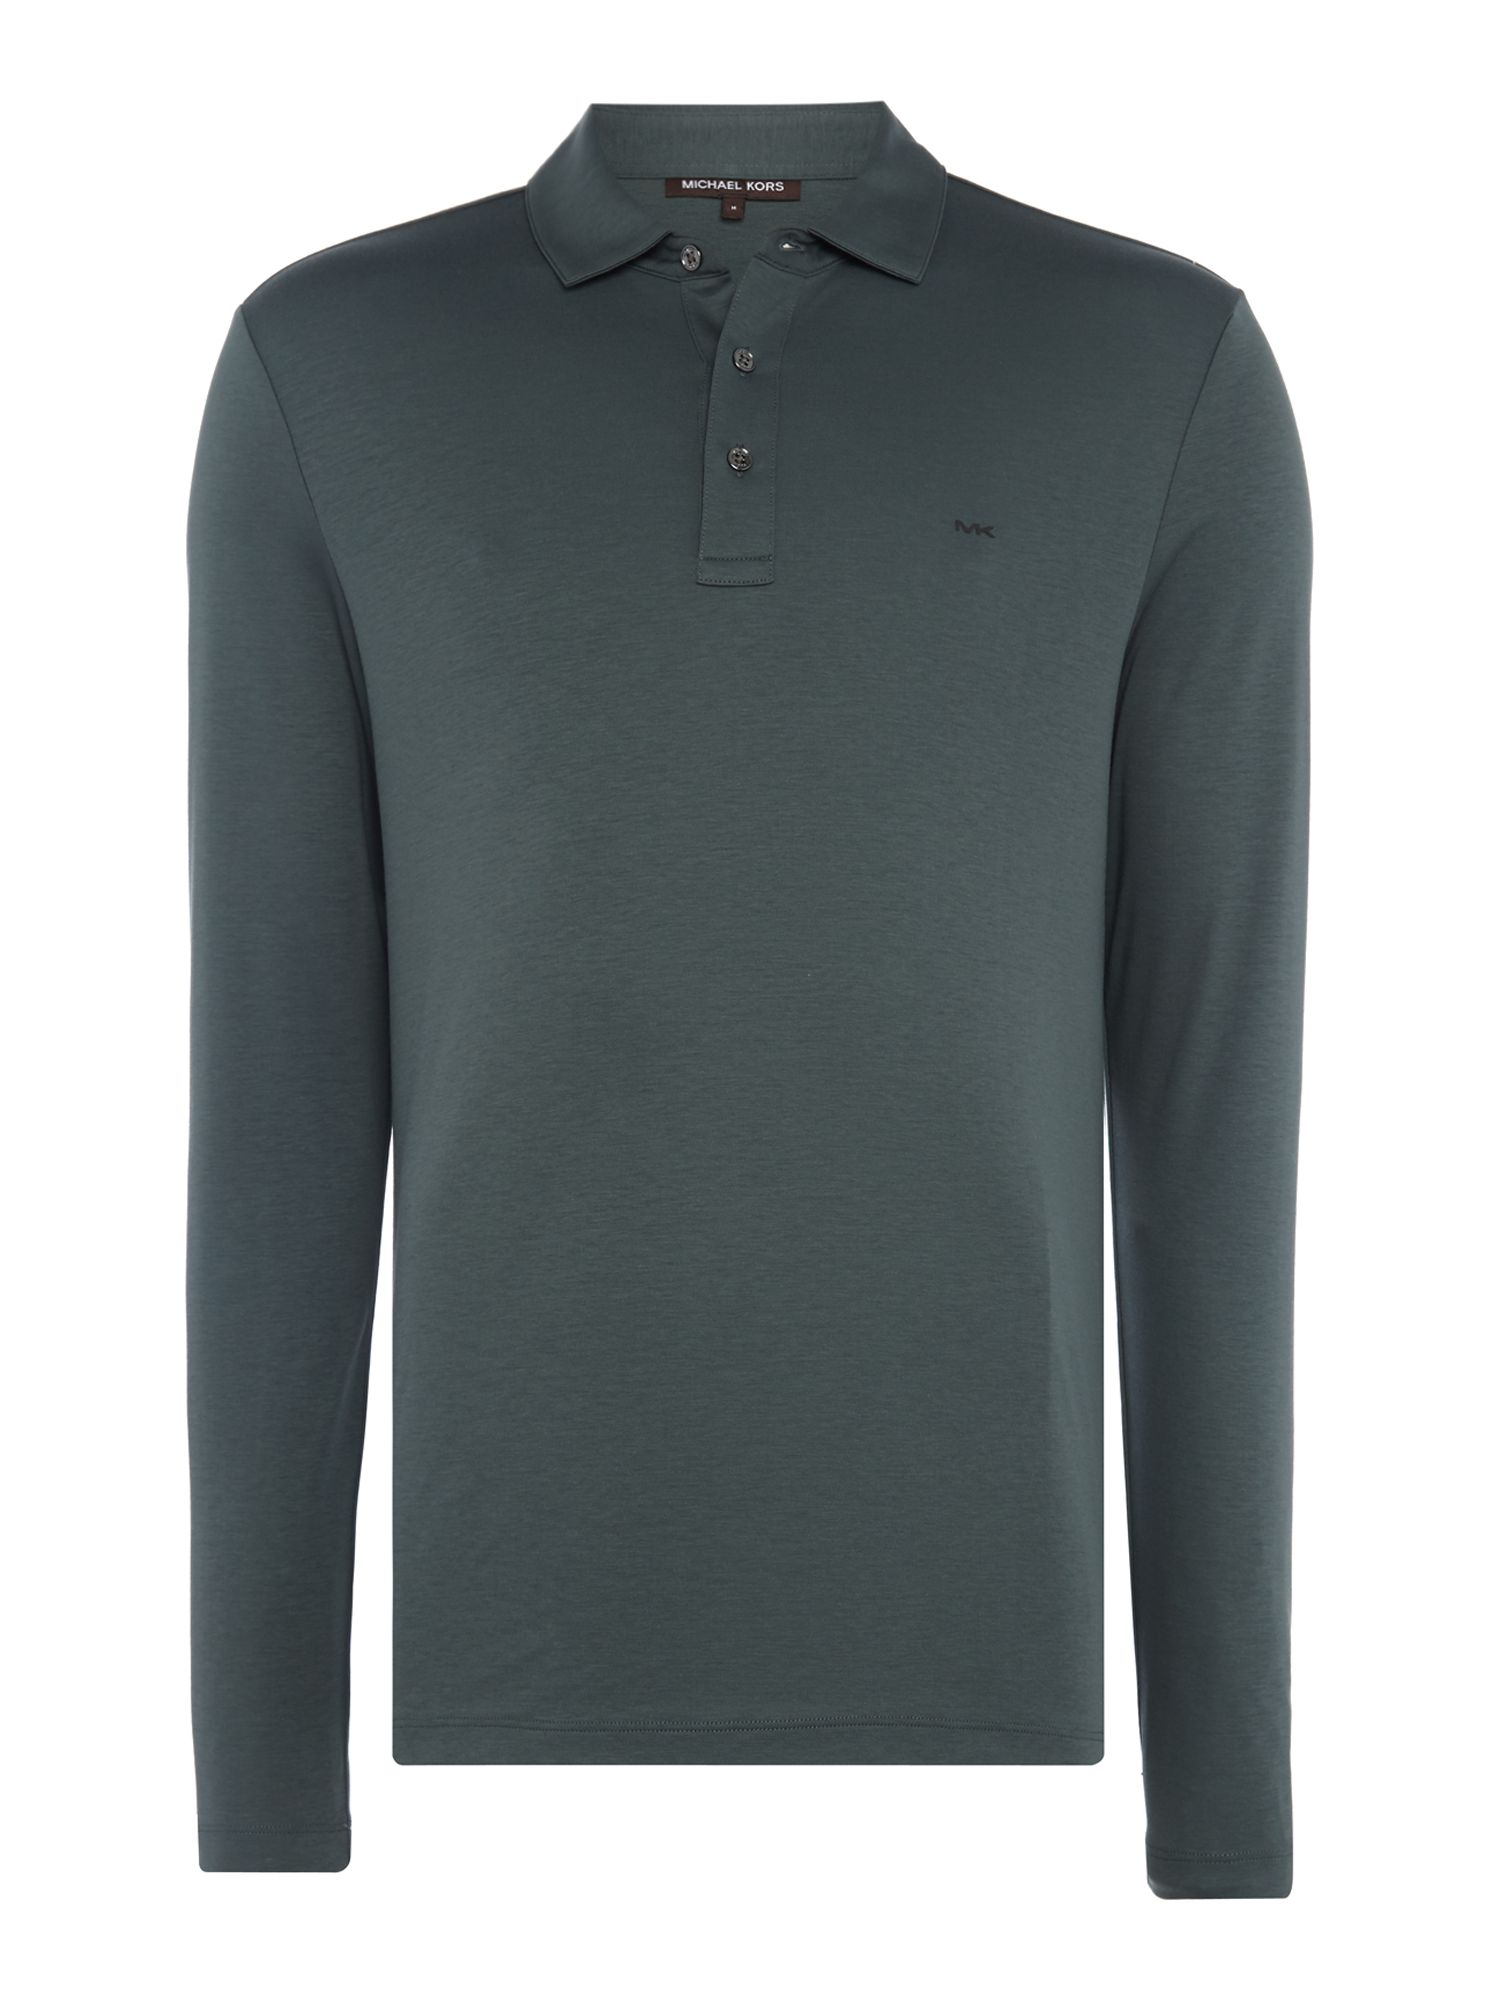 Men's Michael Kors Long Sleeve Slim Fit Polo Shirt, Dark Green